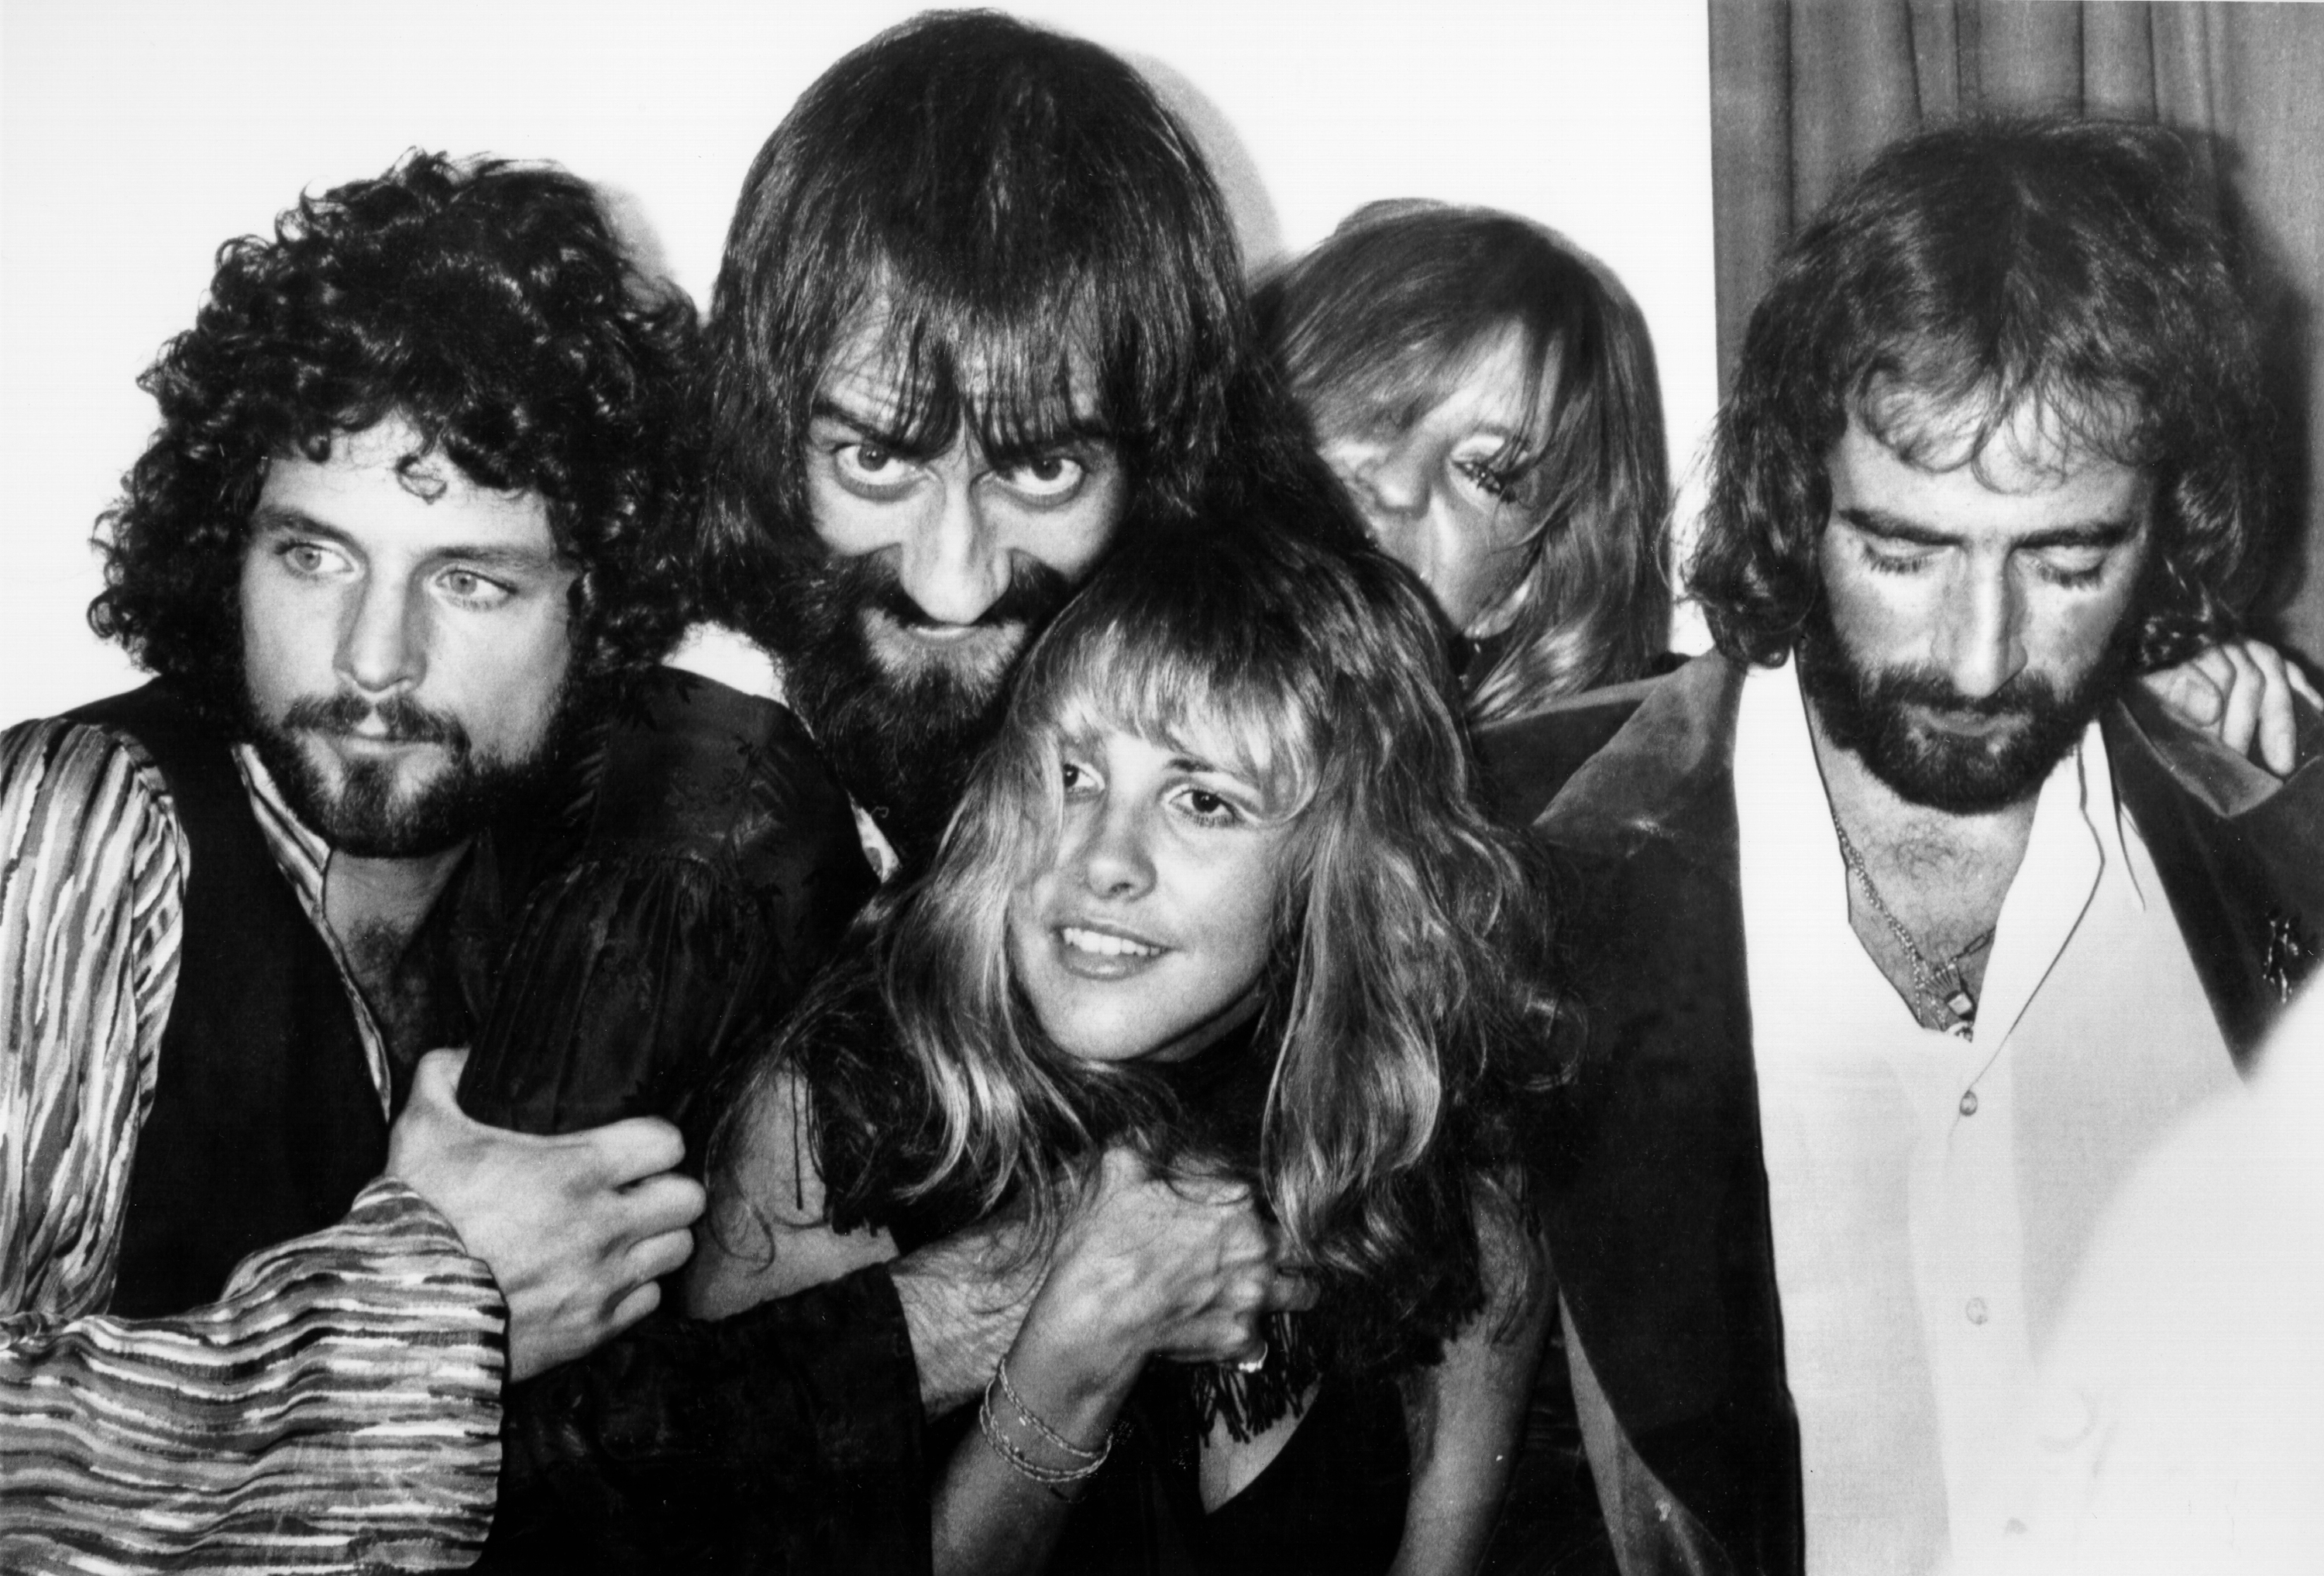 Fleetwood Mac's 'Dreams' returns to the charts, thanks to viral TikTok video